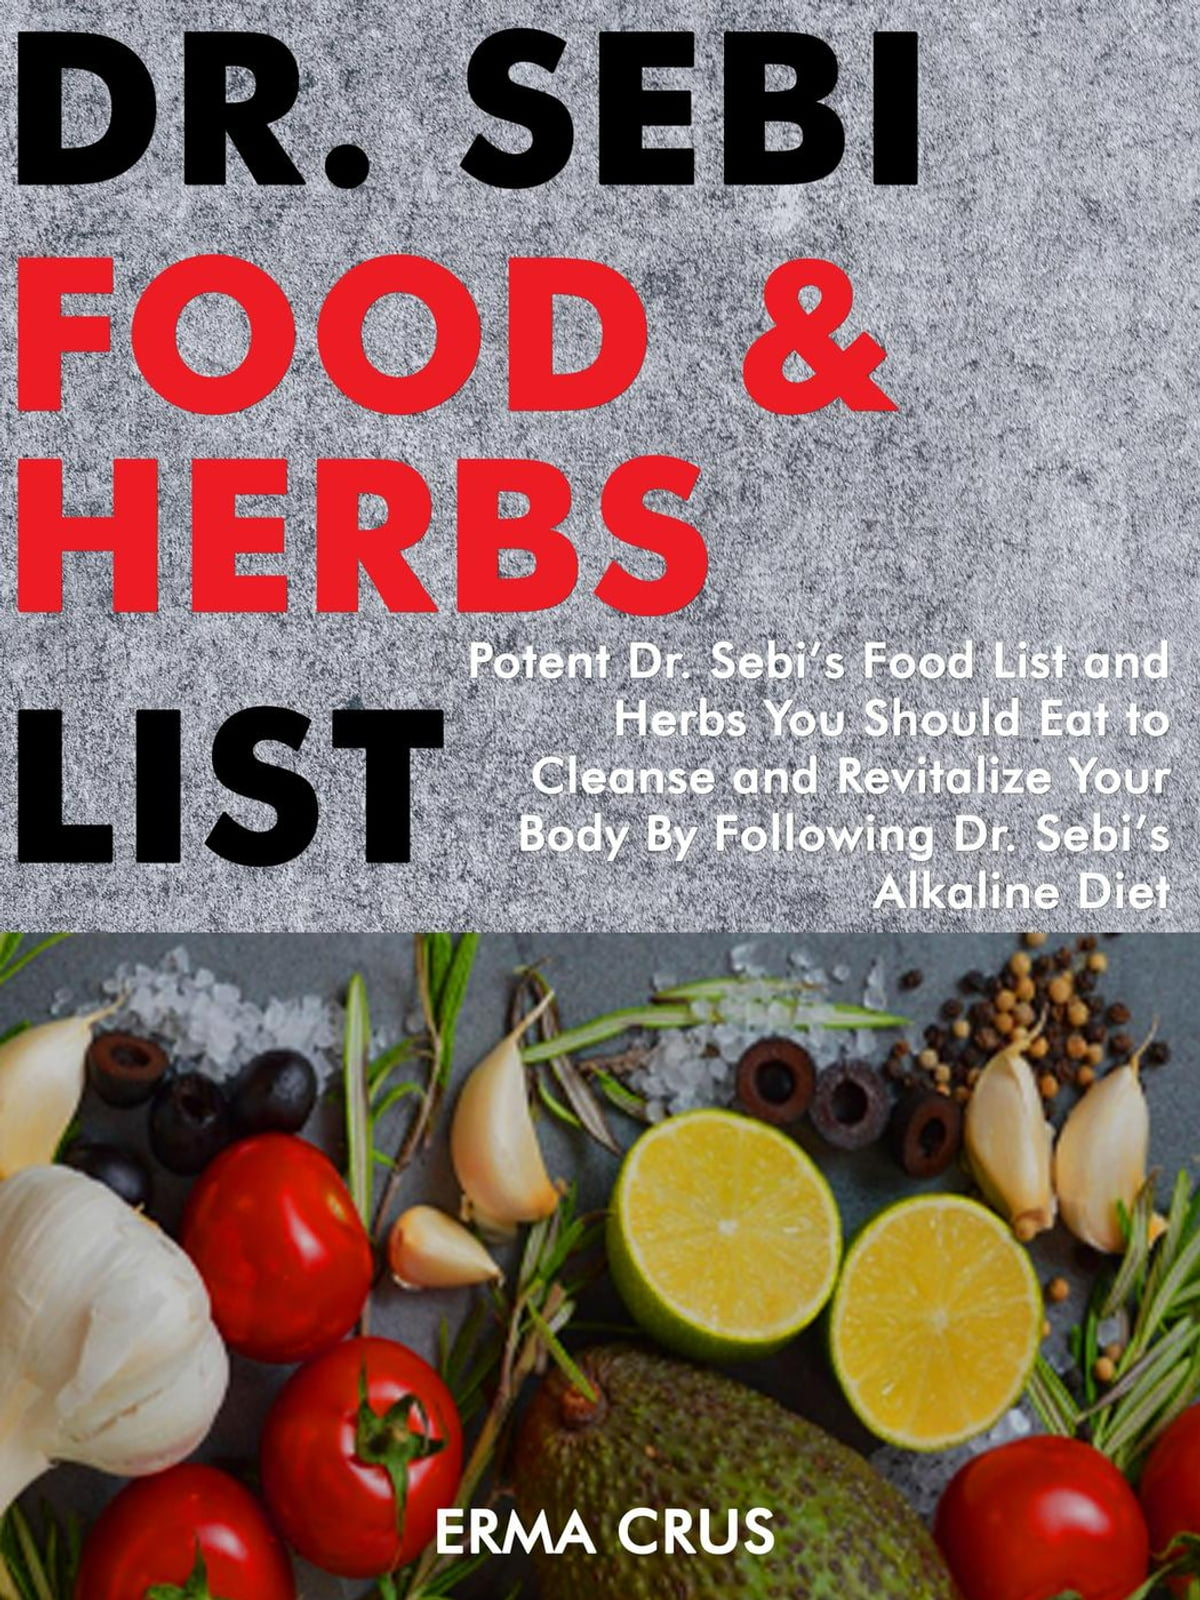 Dr  Sebi Food and Herbs List: Potent Dr  Sebi's Food List and Herbs You  Should eat to Cleanse and Revitalize Your Body by Following dr  Sebi's